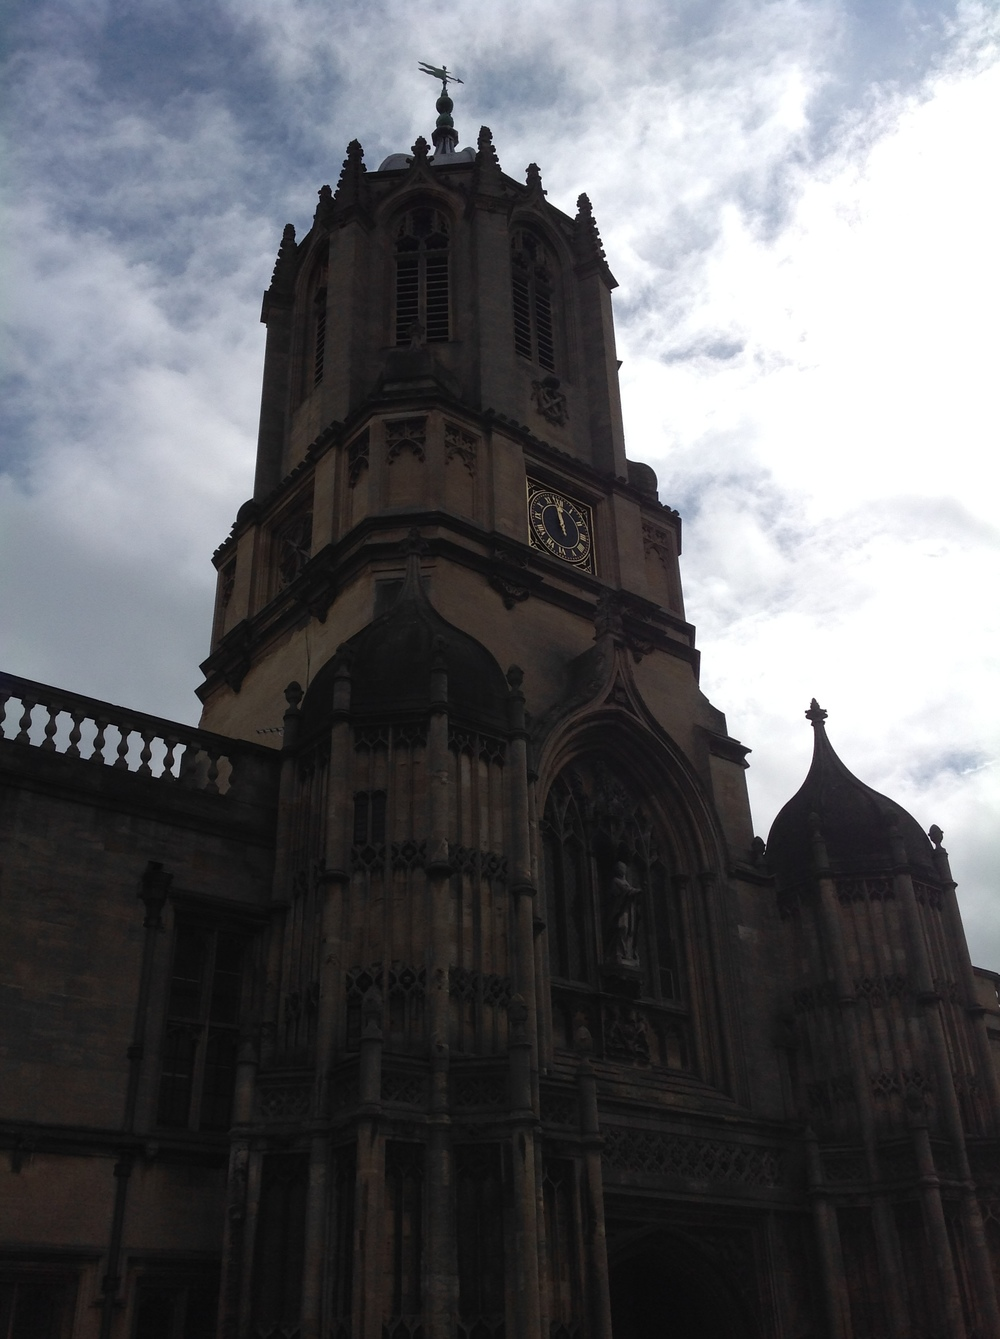 Christ Church in Oxford.